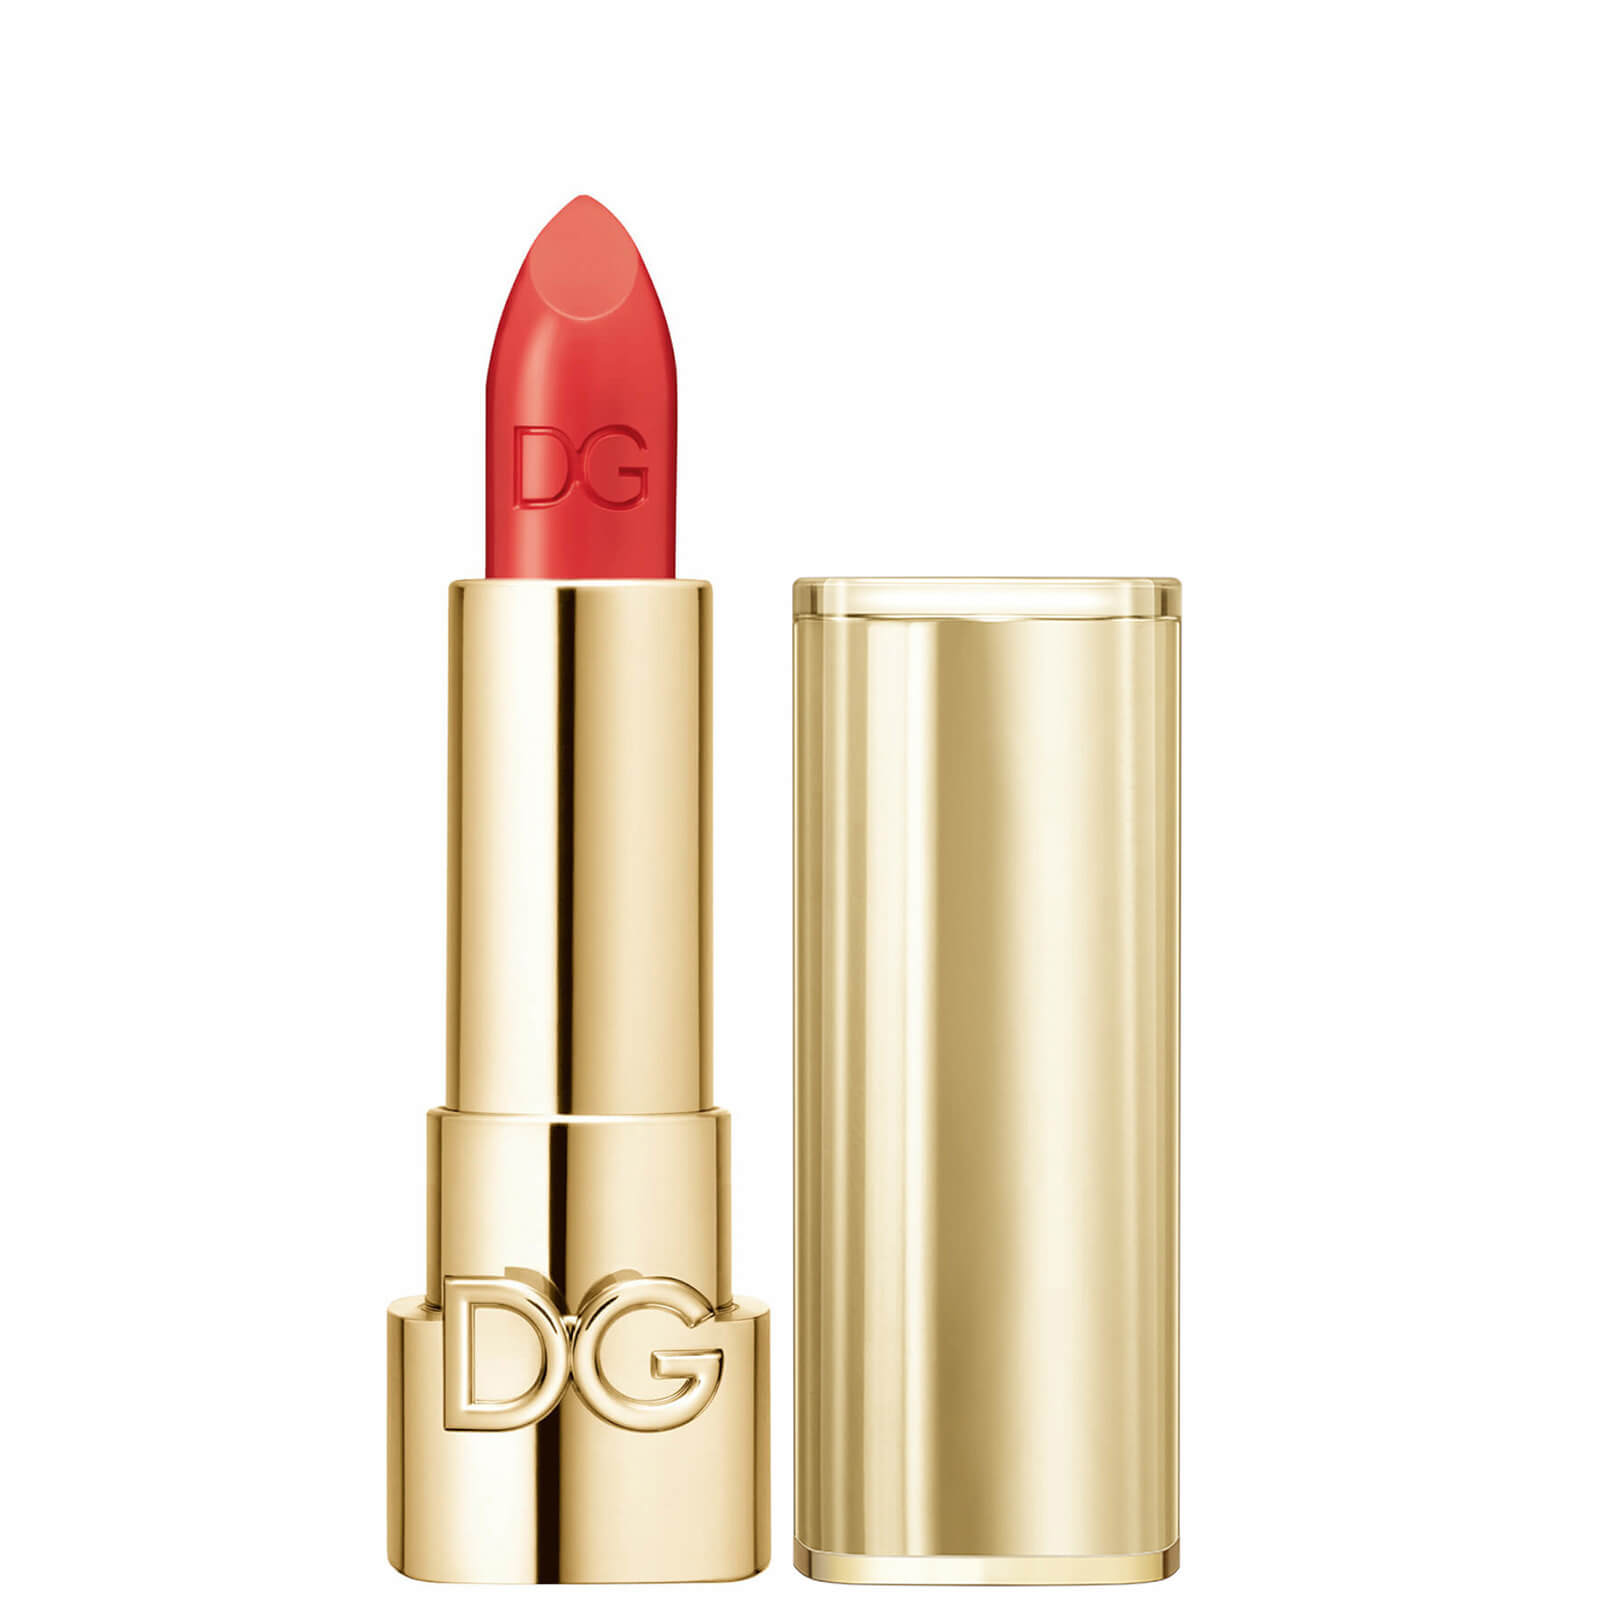 Dolce&Gabbana The Only One Lipstick + Cap (Gold) (Various Shades) - 600 Real Fire